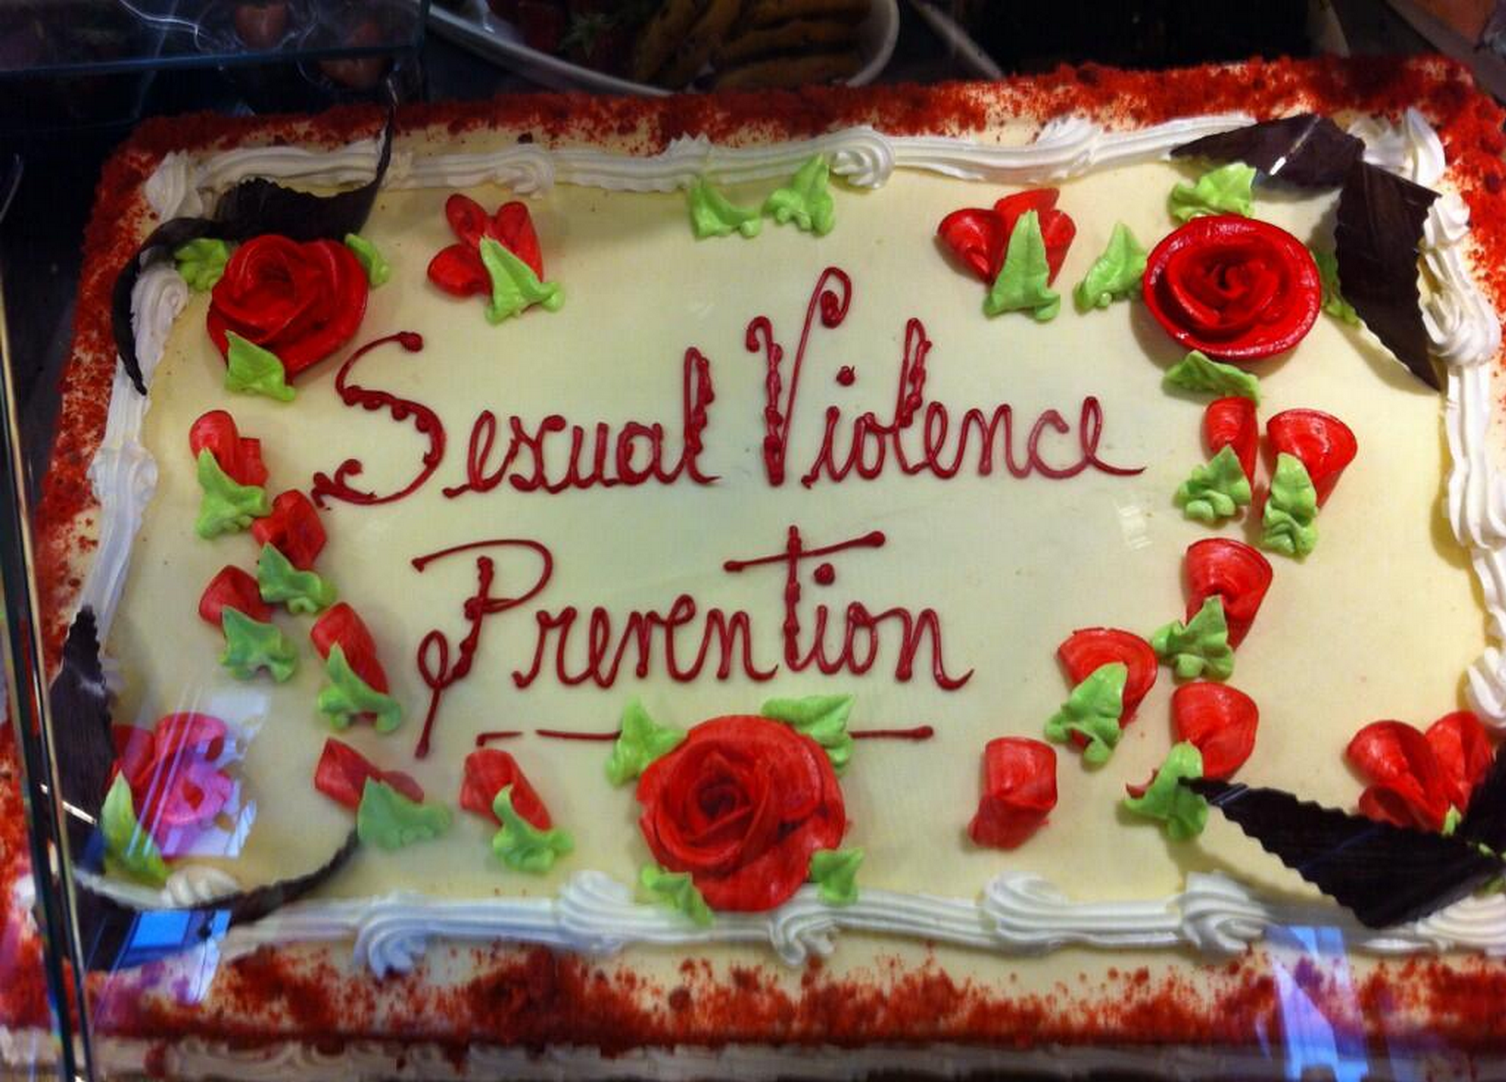 Columbia University's dining hall marked Sexual Assault Awareness Month by serving up a terrible idea.